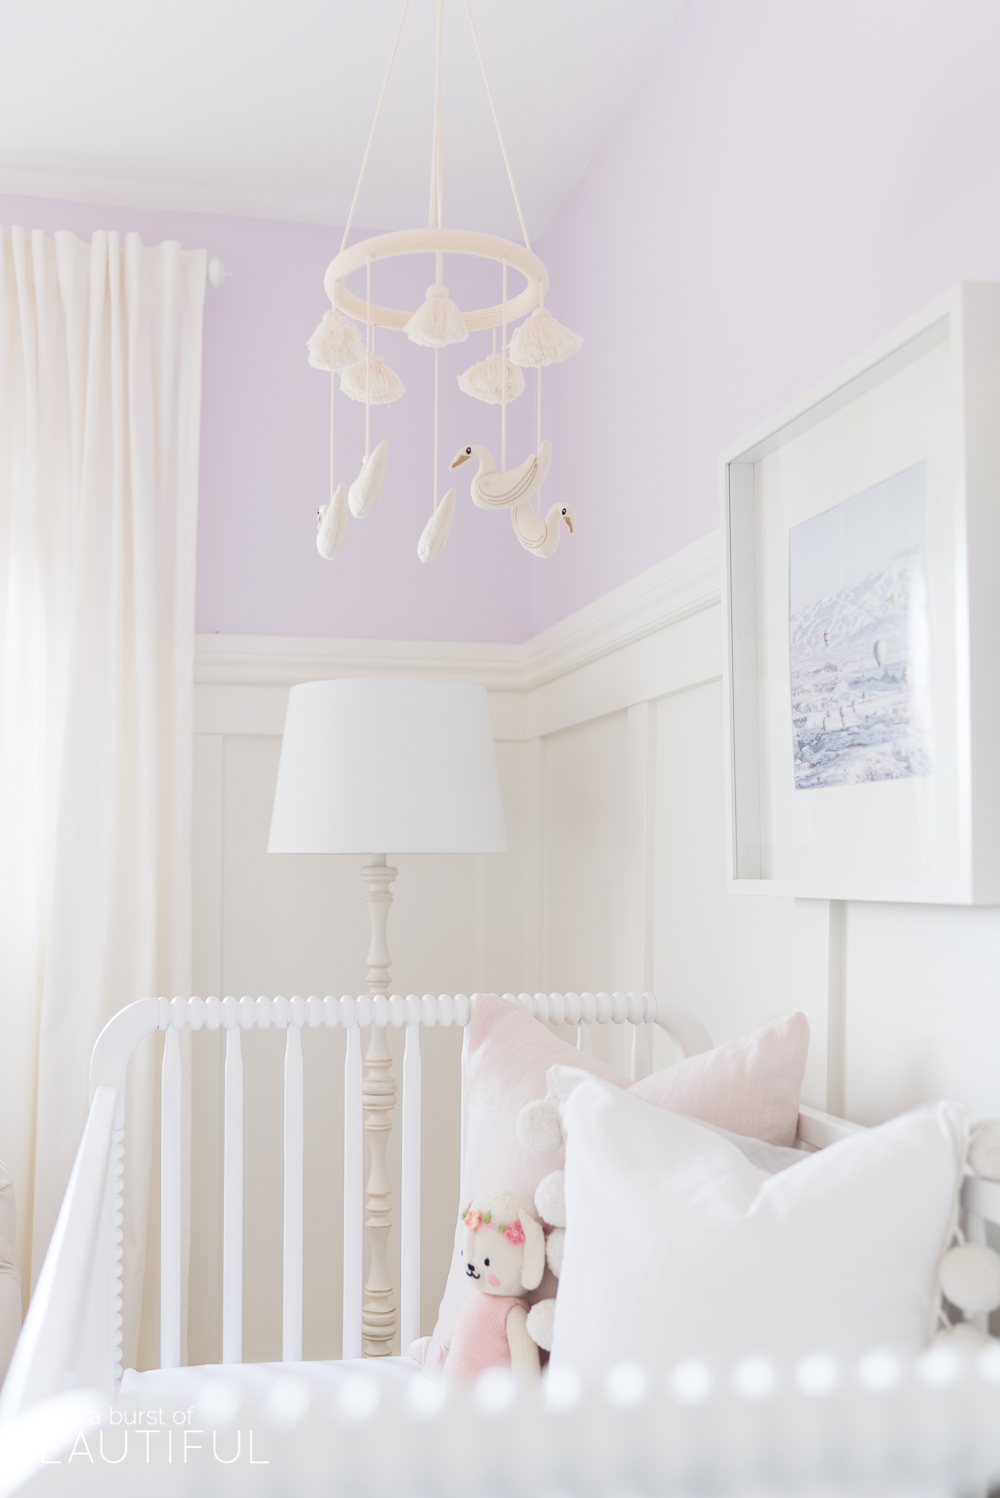 Board and batten wainscoting is a simple and inexpensive way to add character and detail to any space. Find our easy tutorial here.